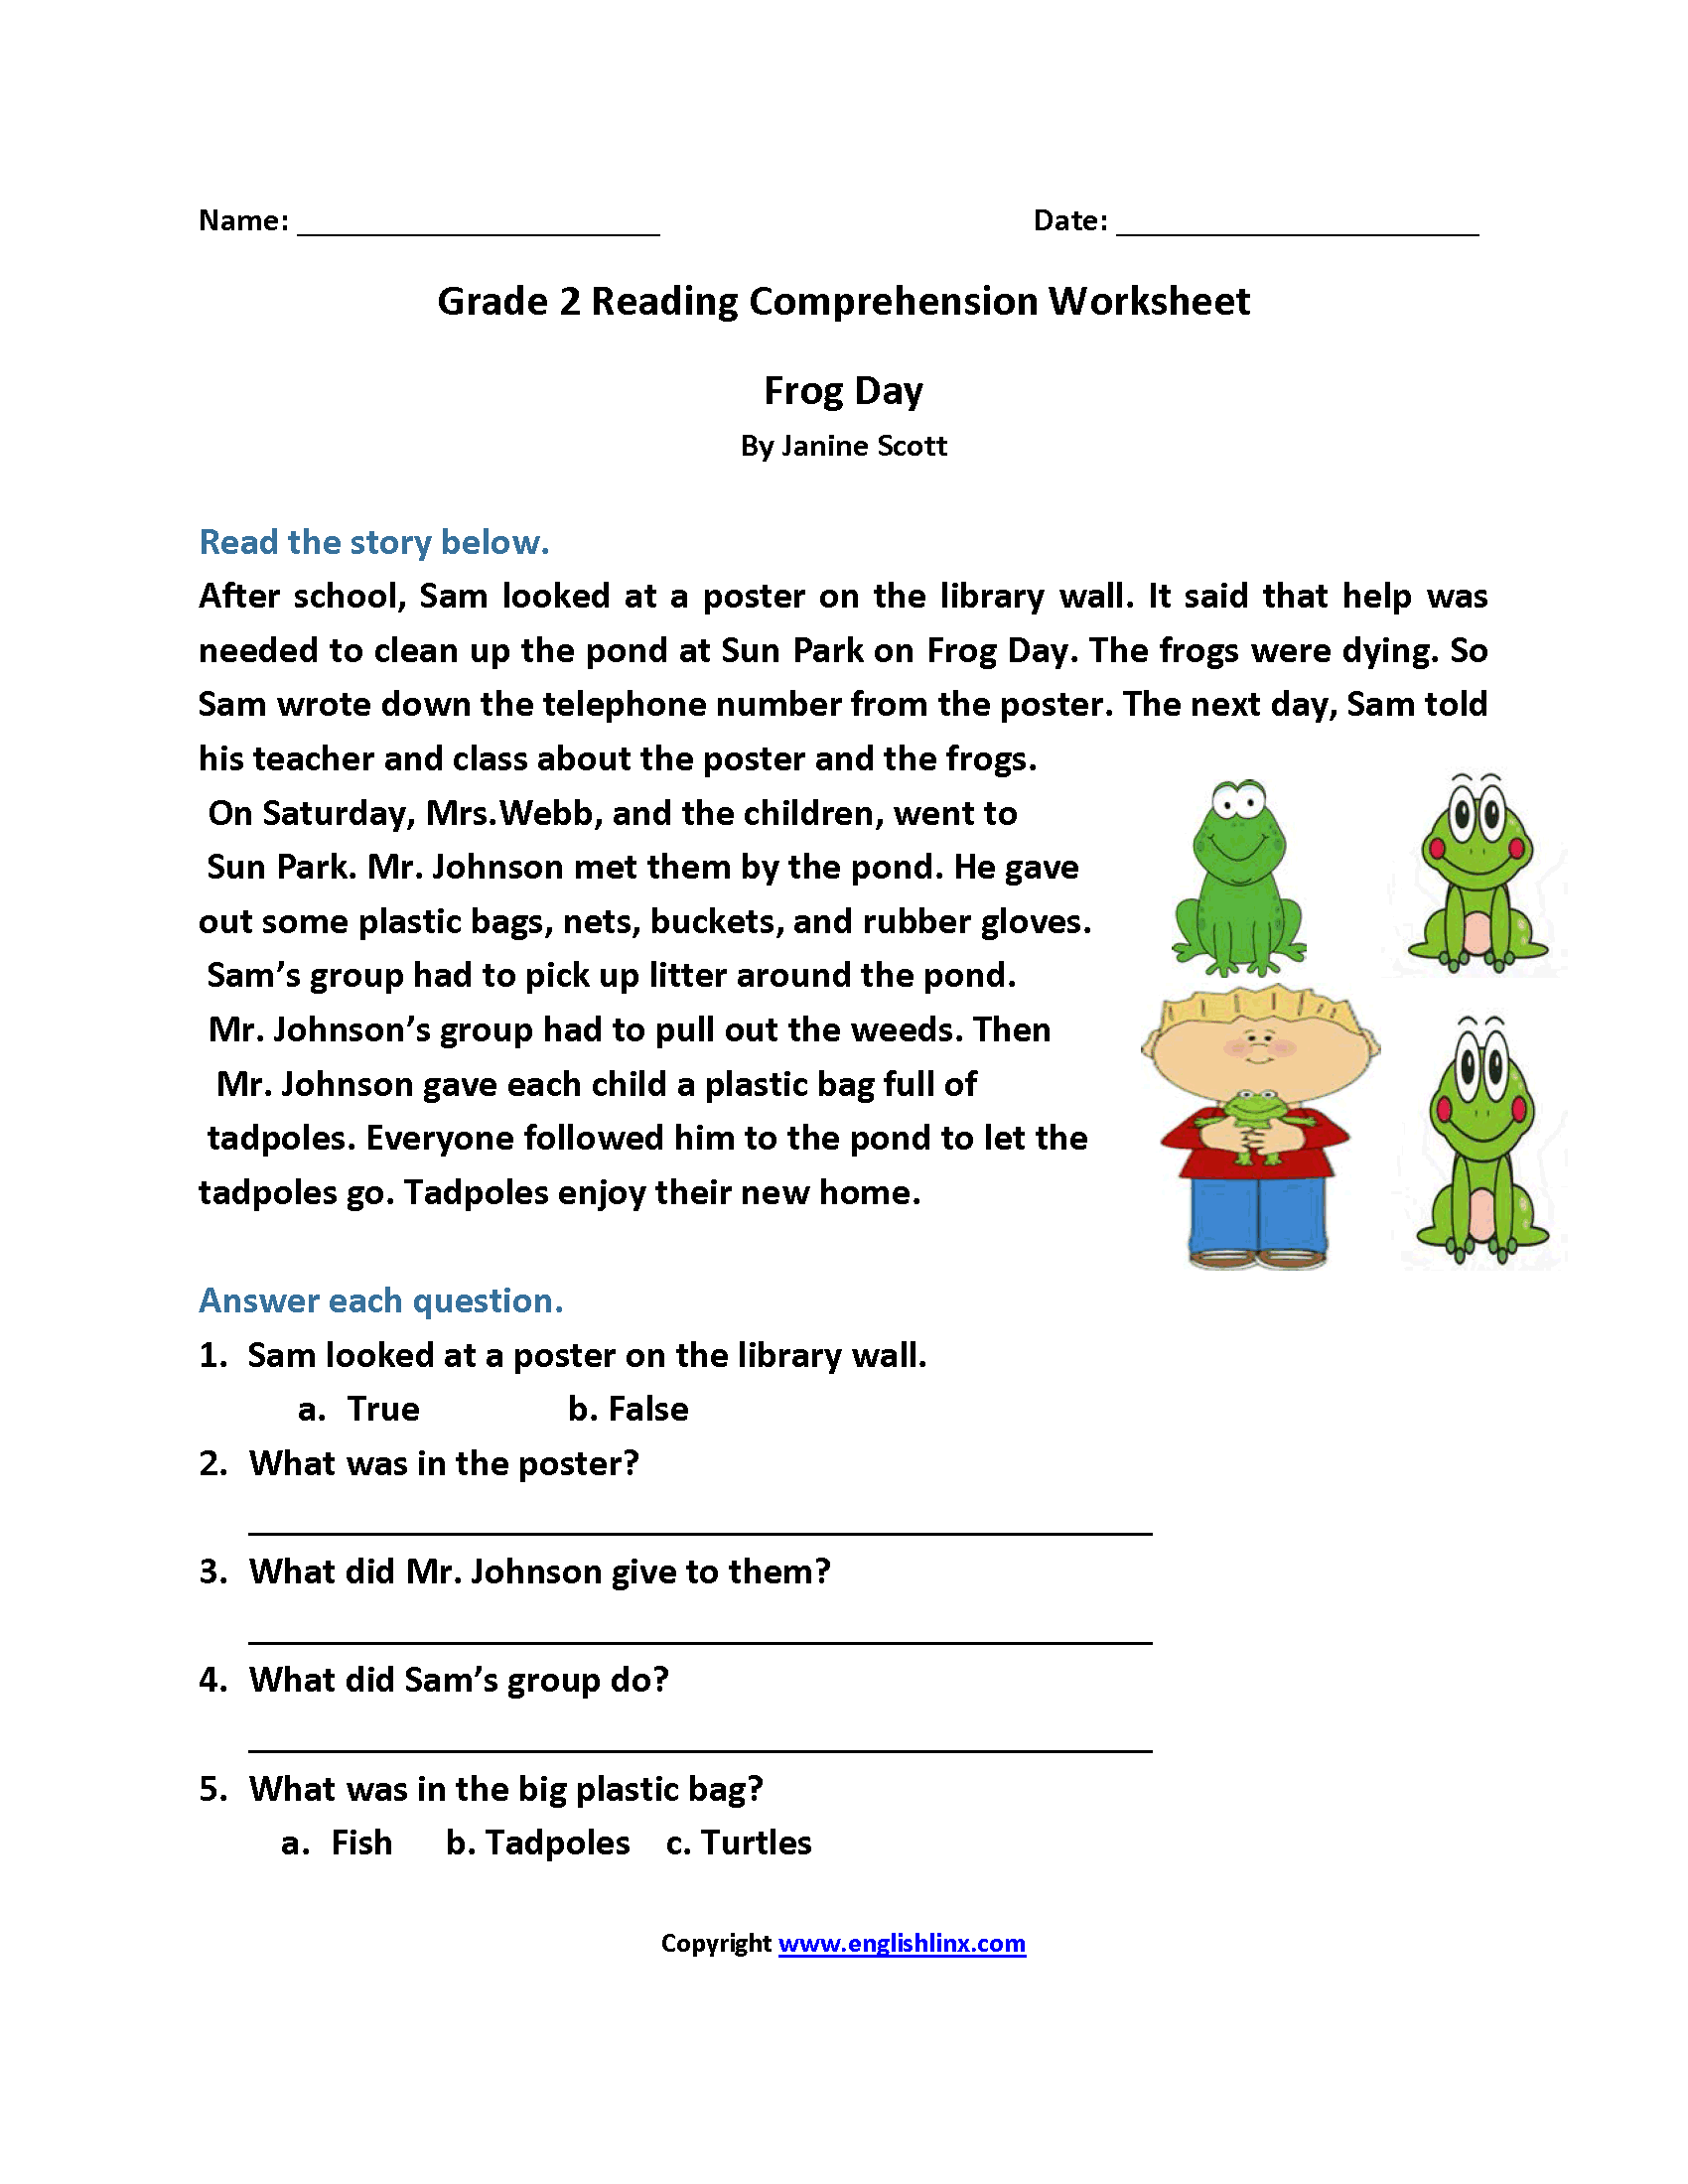 - Frog Day Second Grade Reading Worksheets Reading Comprehension Worksheets,  Comprehension Worksheets, 2nd Grade Reading Worksheets